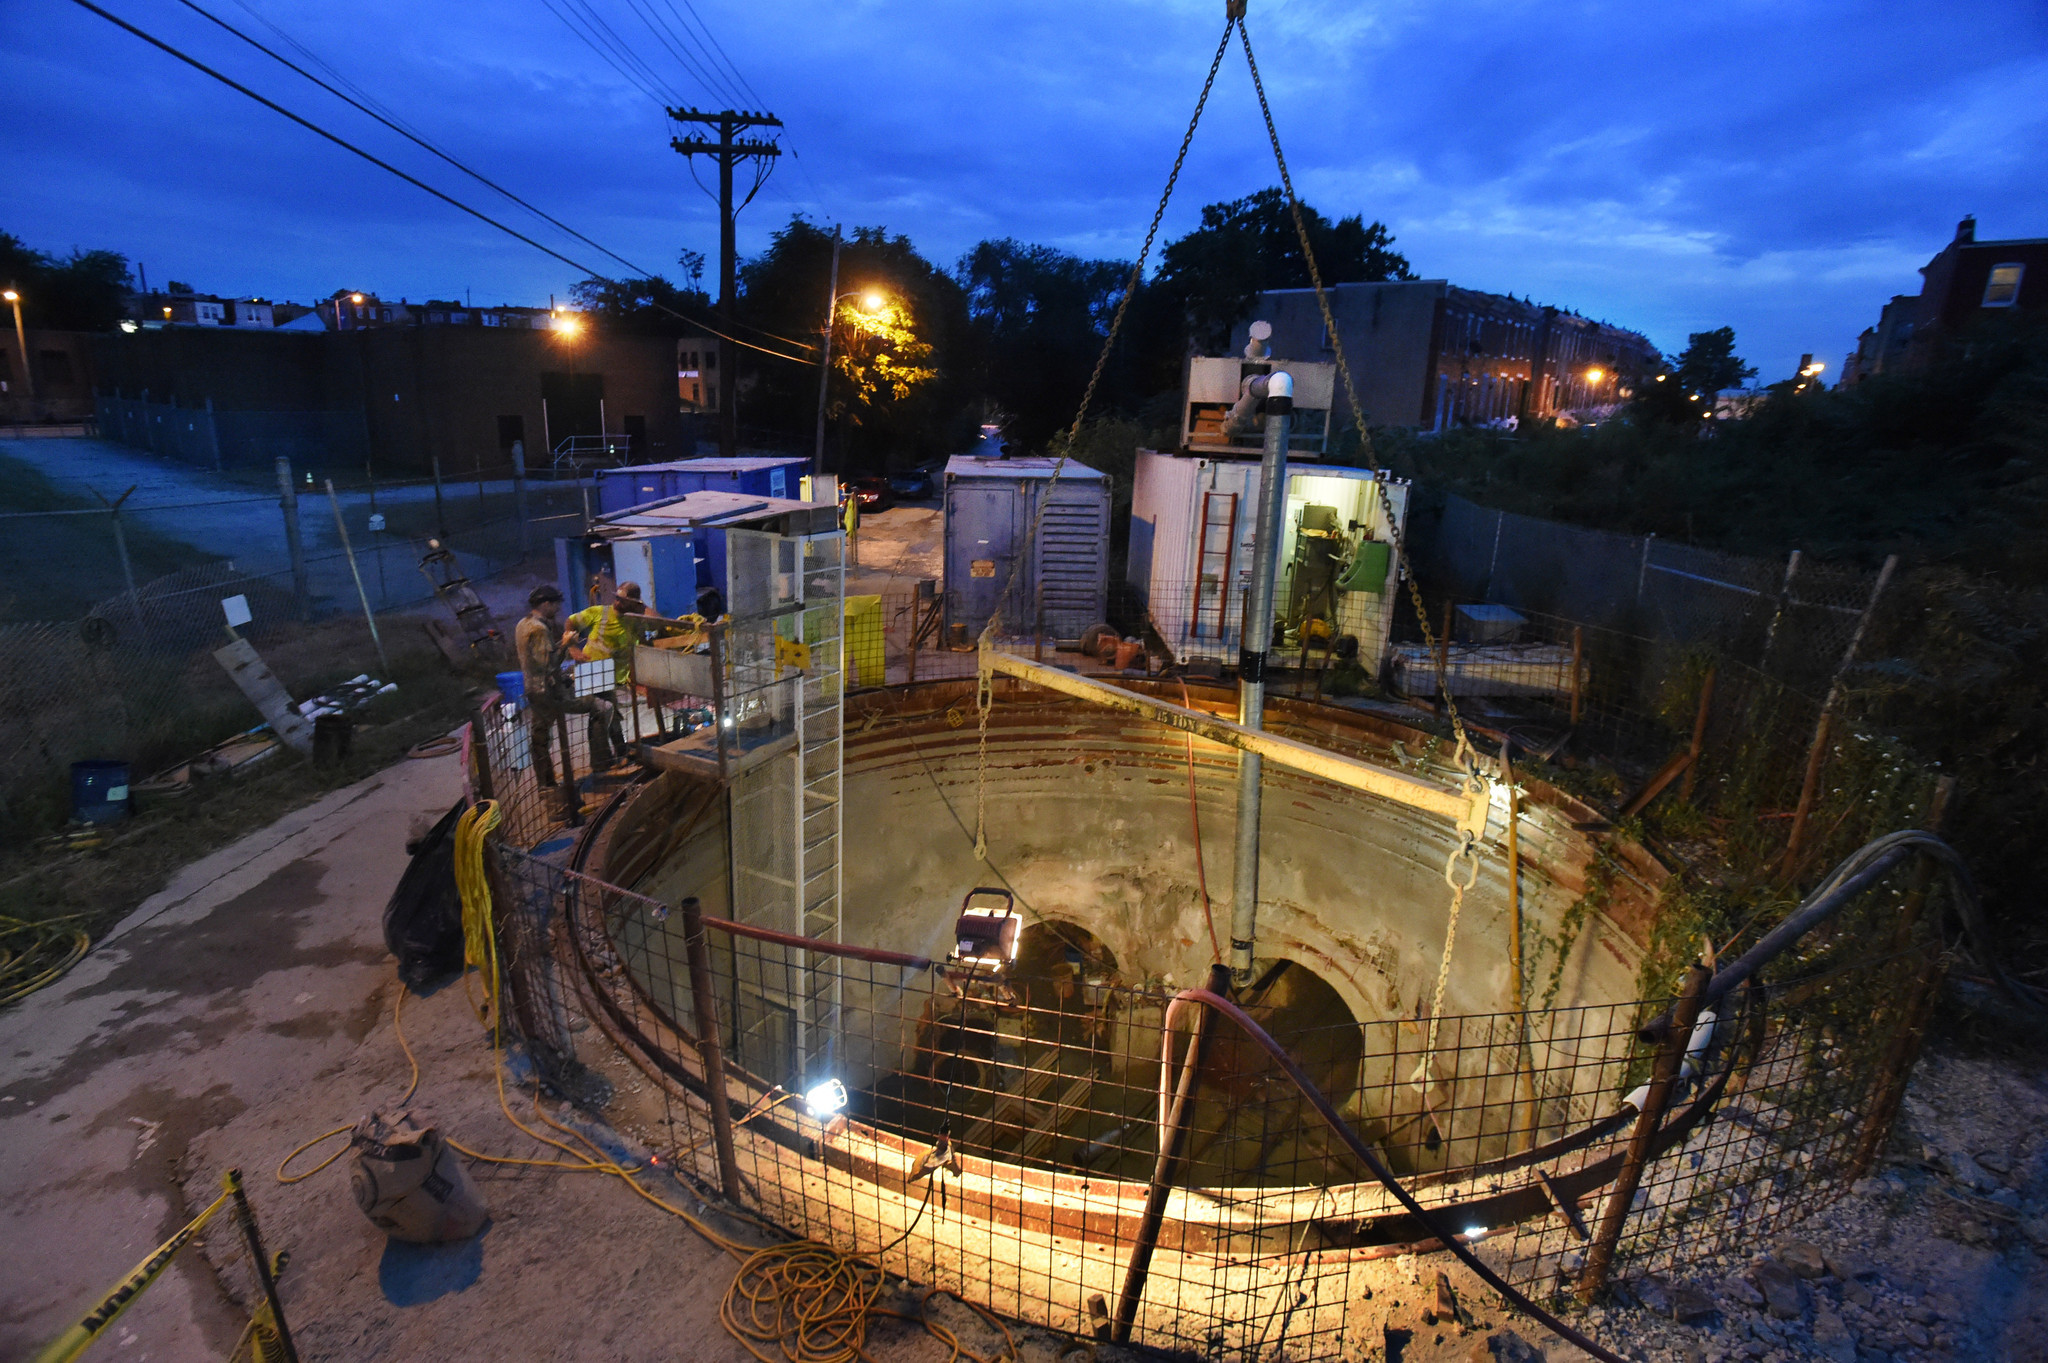 No end in sight for city's $1.1 billion overhaul of leaky ... $700 Million